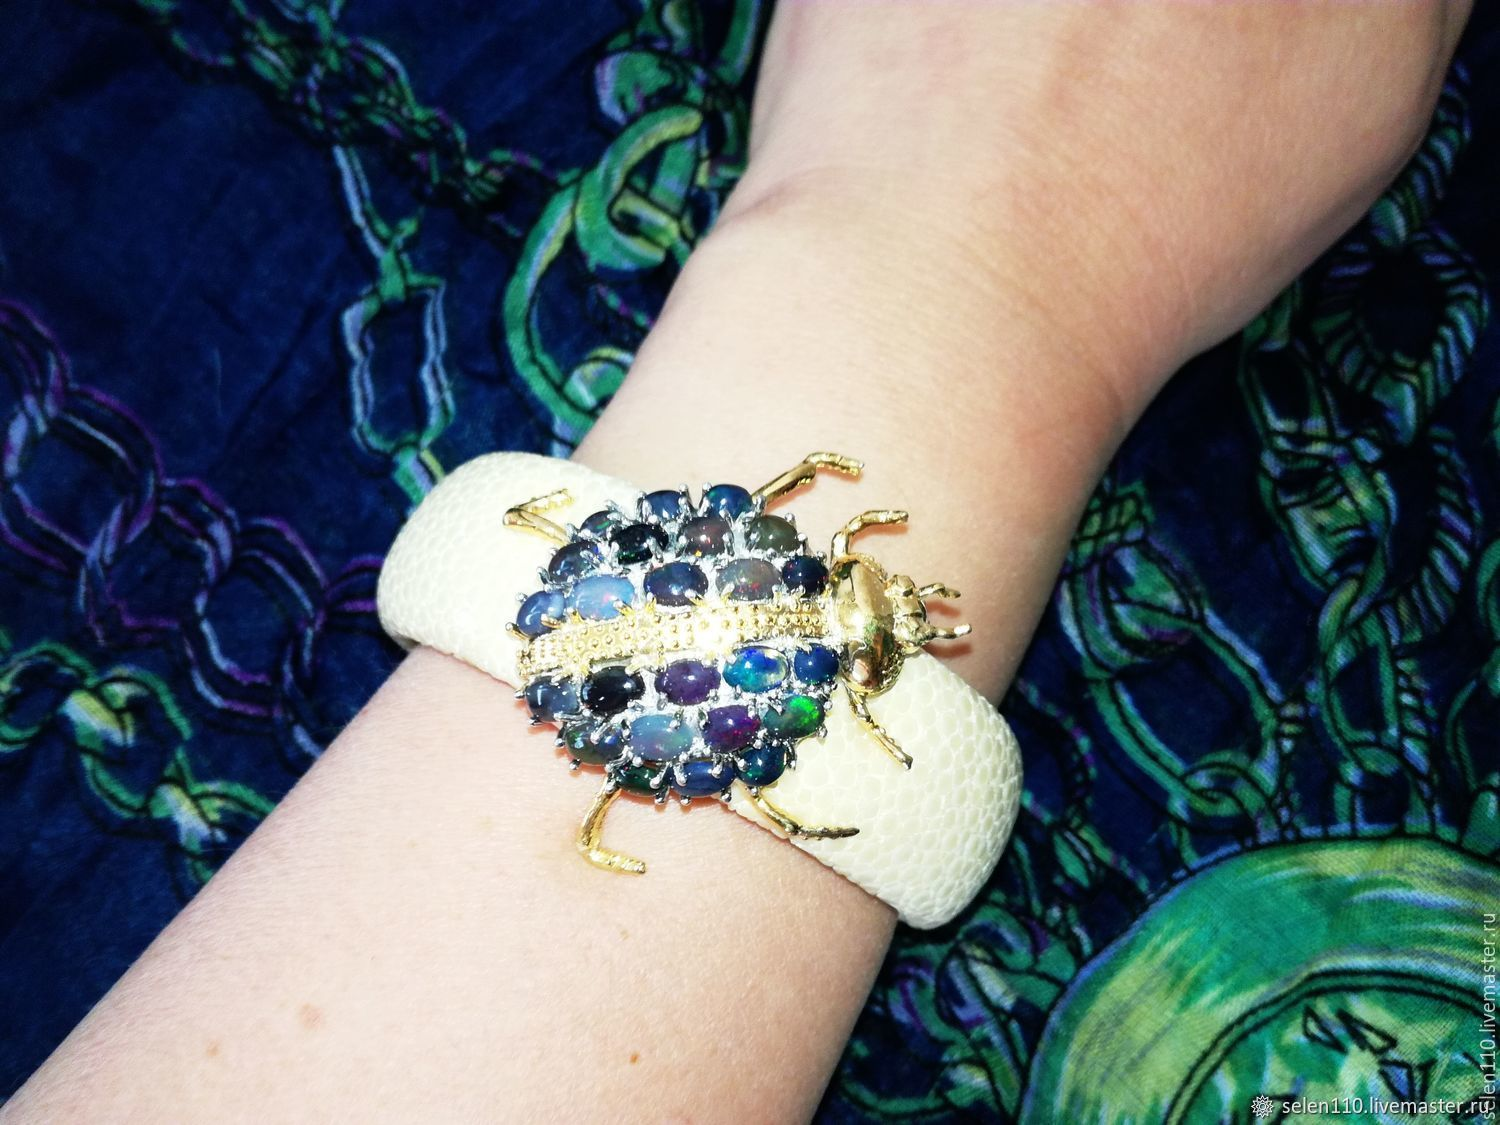 Bracelet 'may beetle' with black opals, Stingray leather, Bead bracelet, Voronezh,  Фото №1